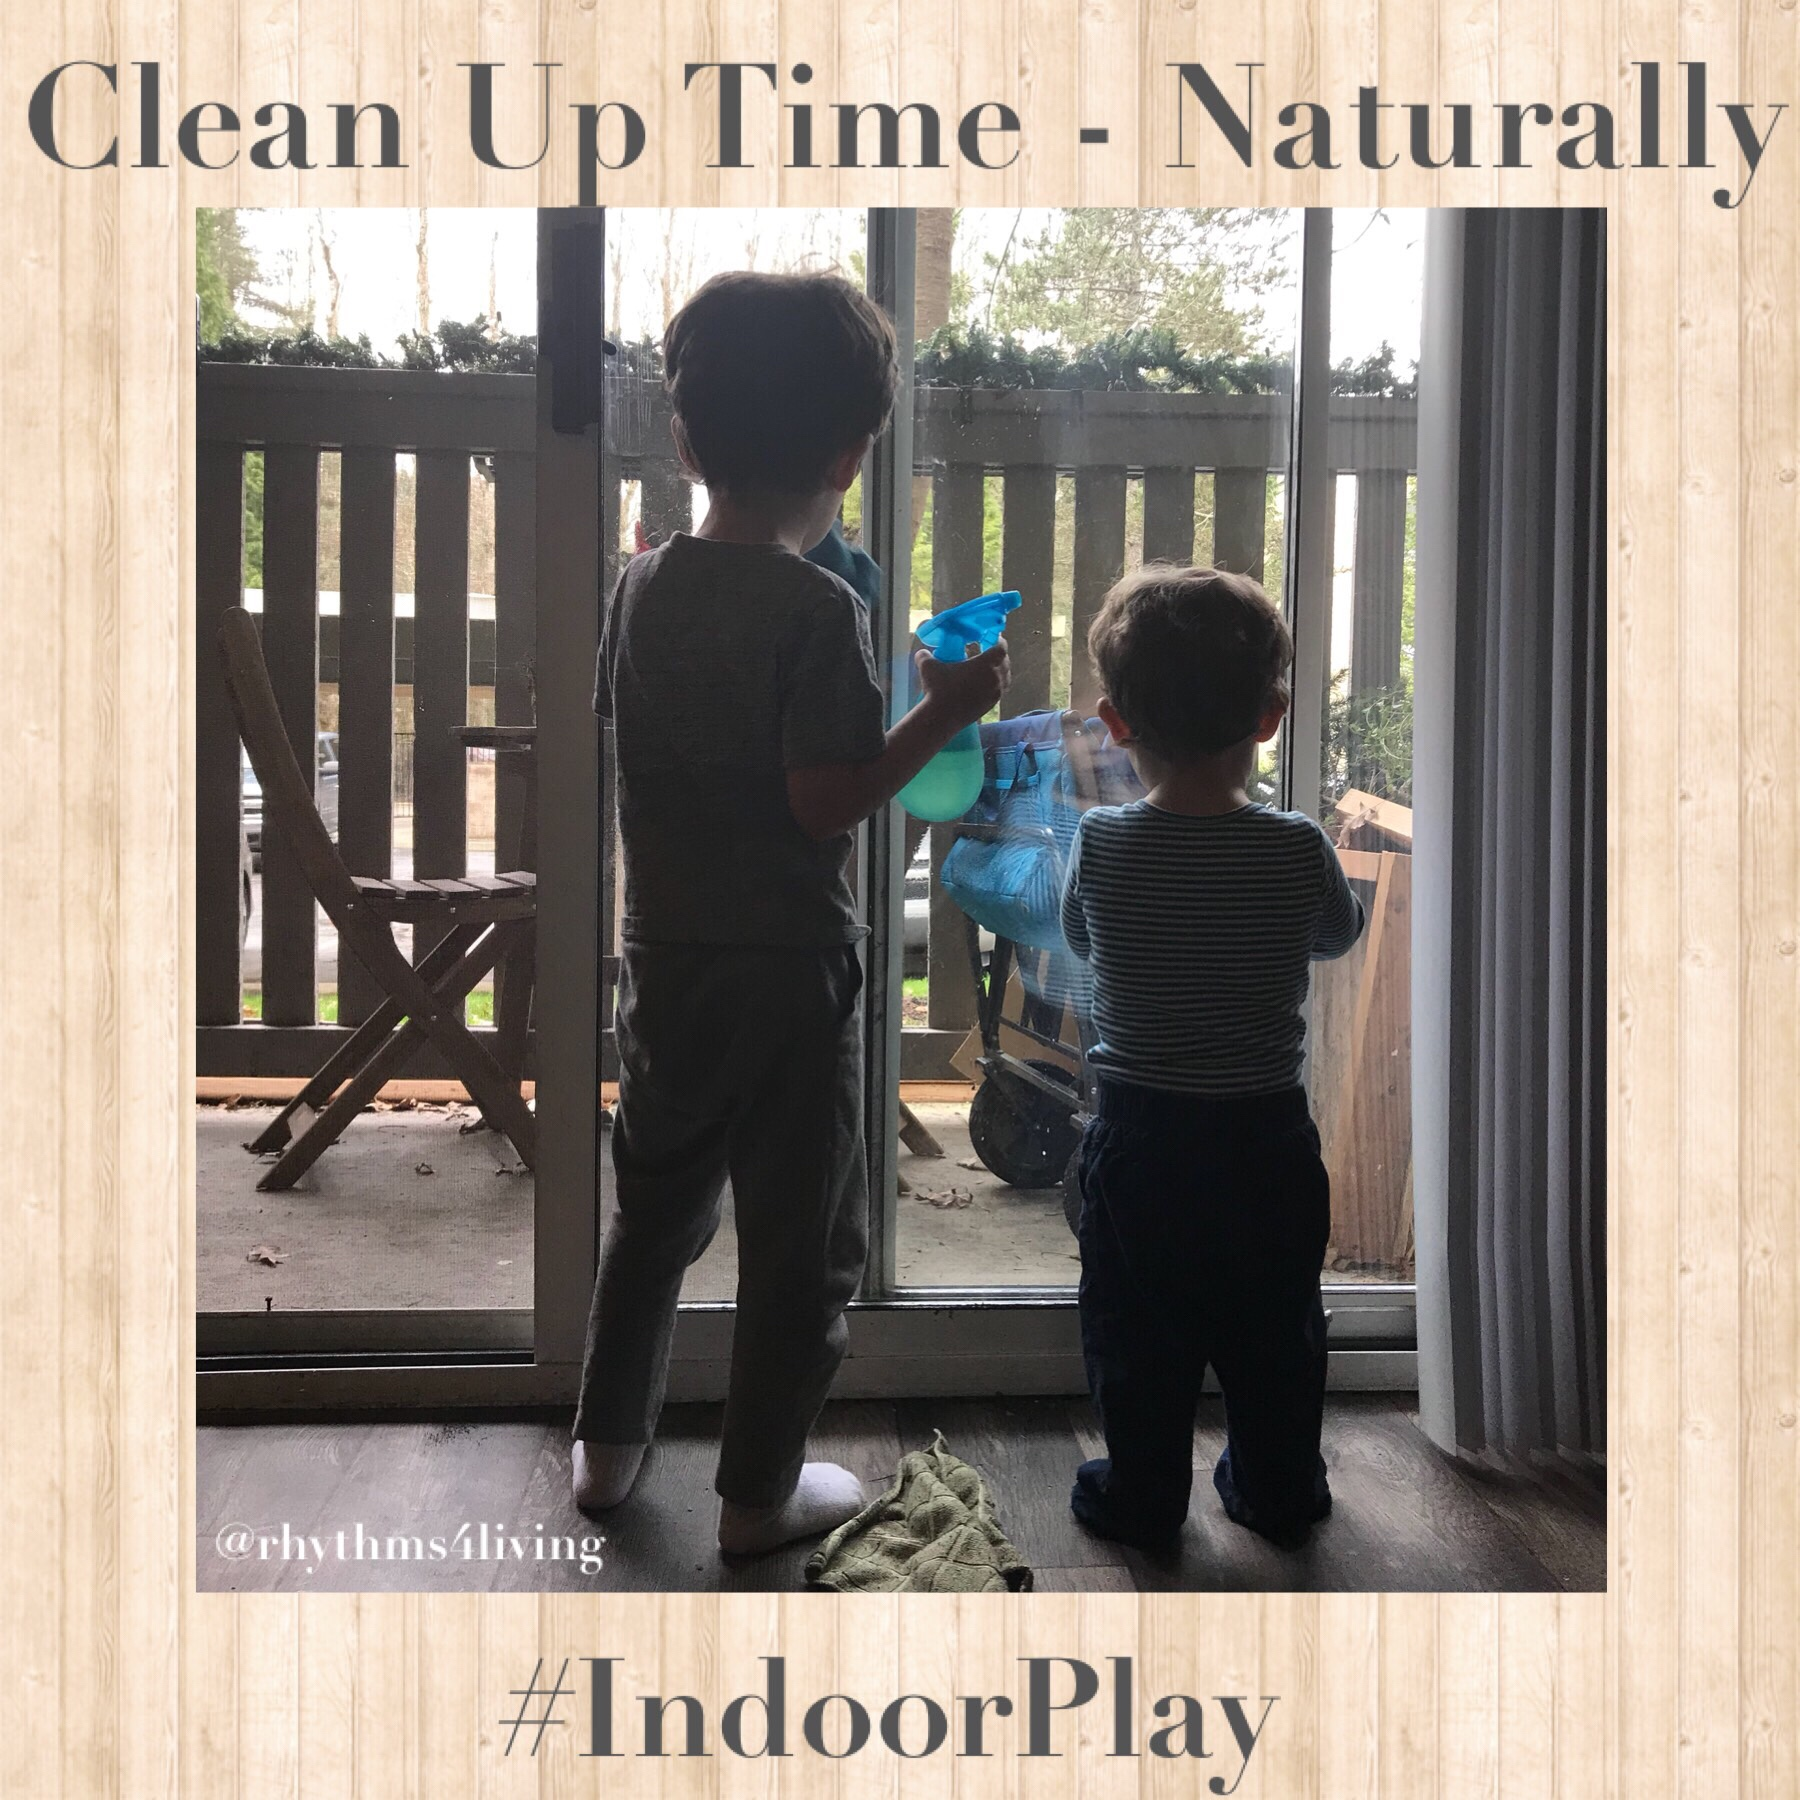 Clean Up Time, Natural cleaning